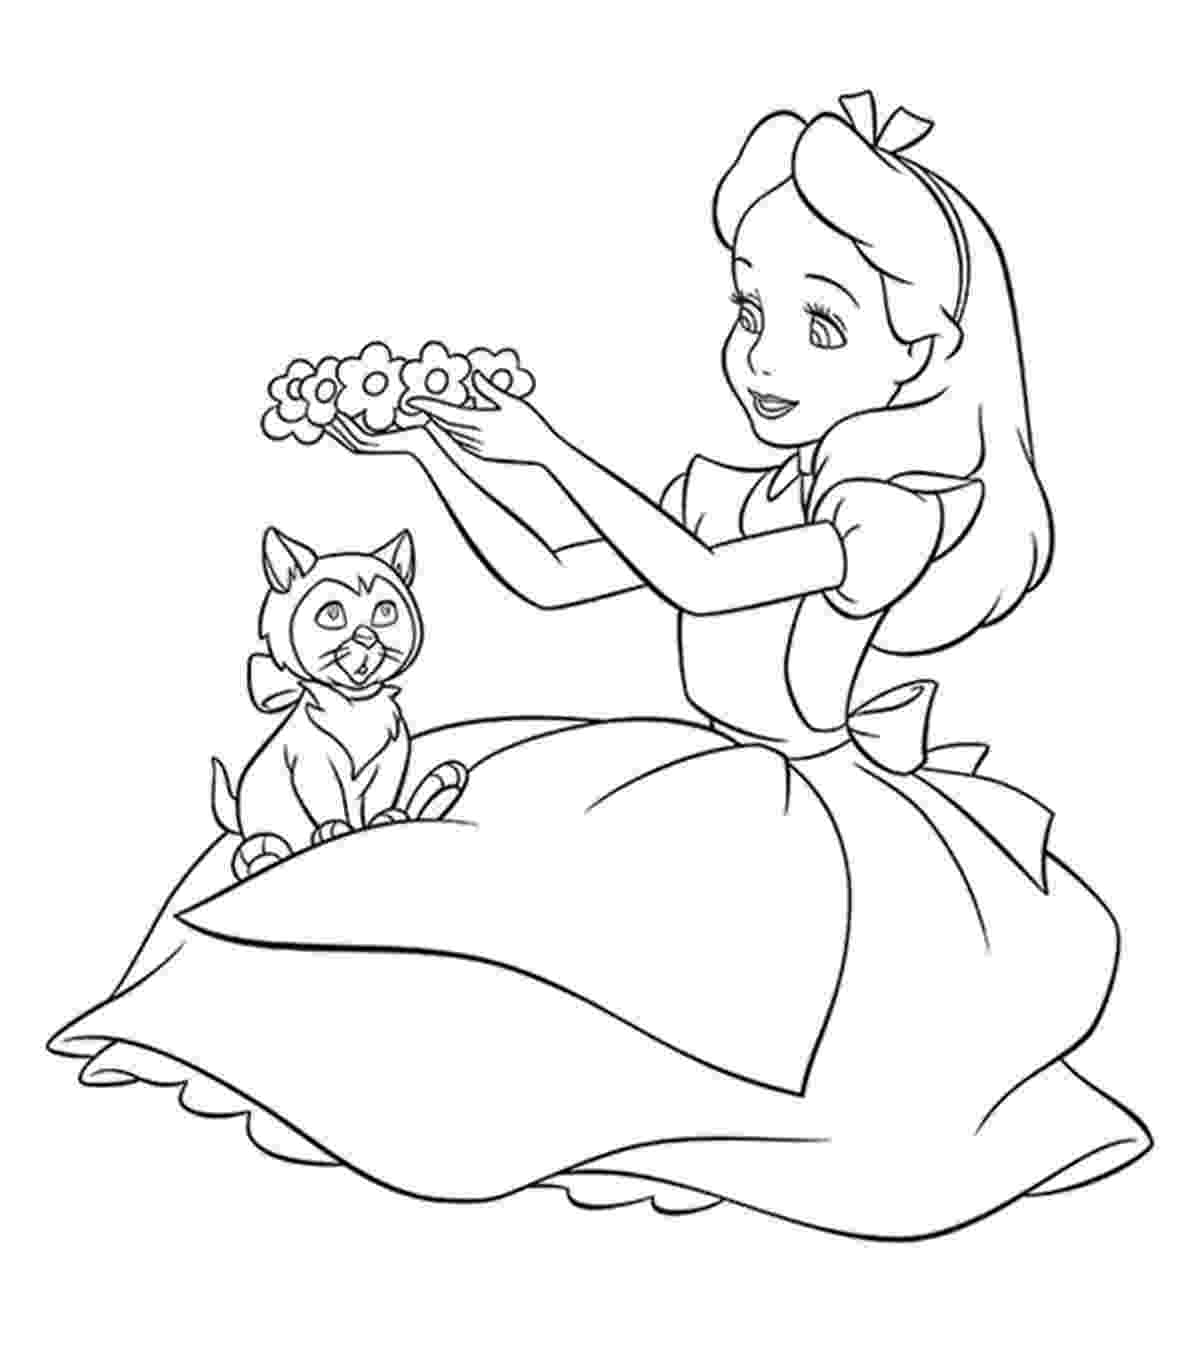 colouring templates disney online disney coloring pages printable kids colouring templates disney colouring